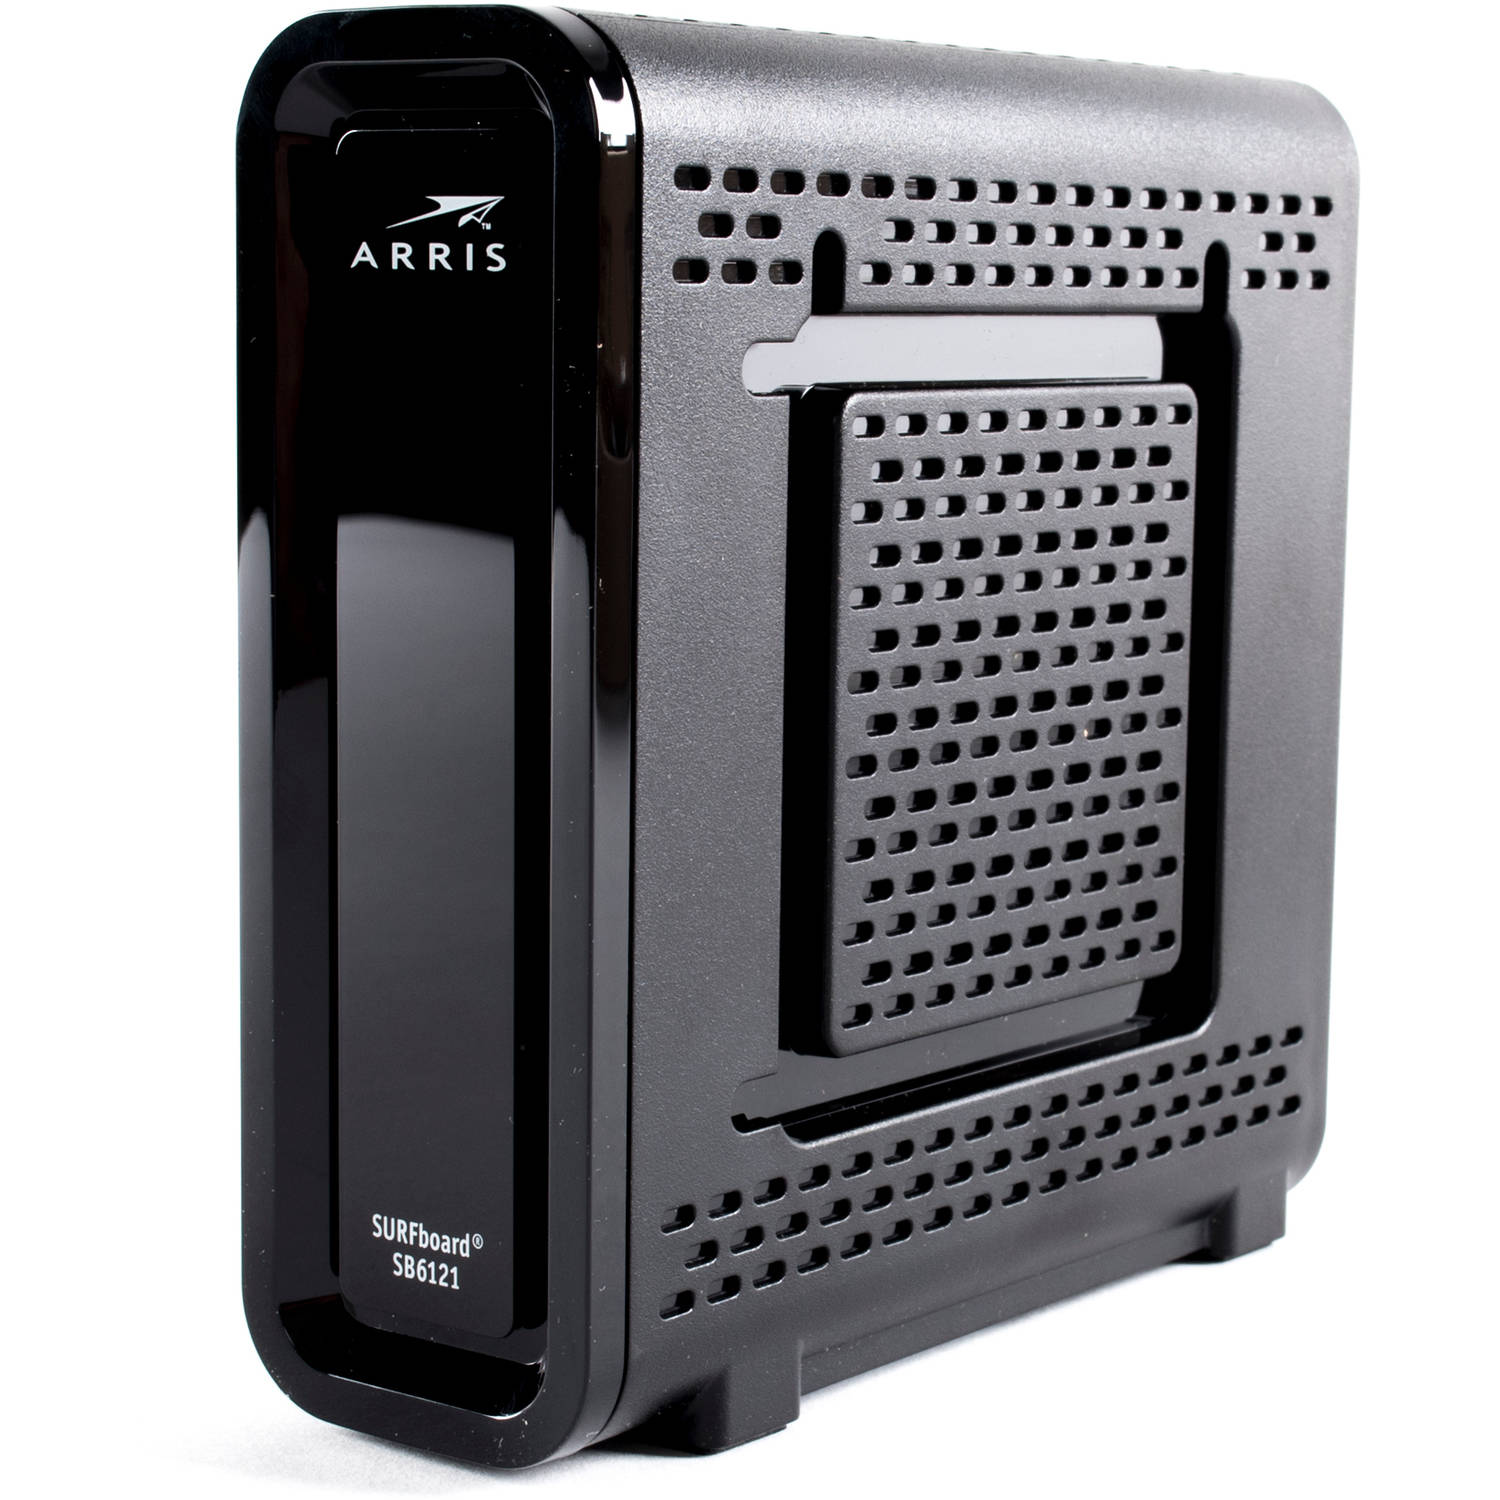 Refurbished ARRIS SURFboard SB6121 DOCSIS 3.0 Cable Modem